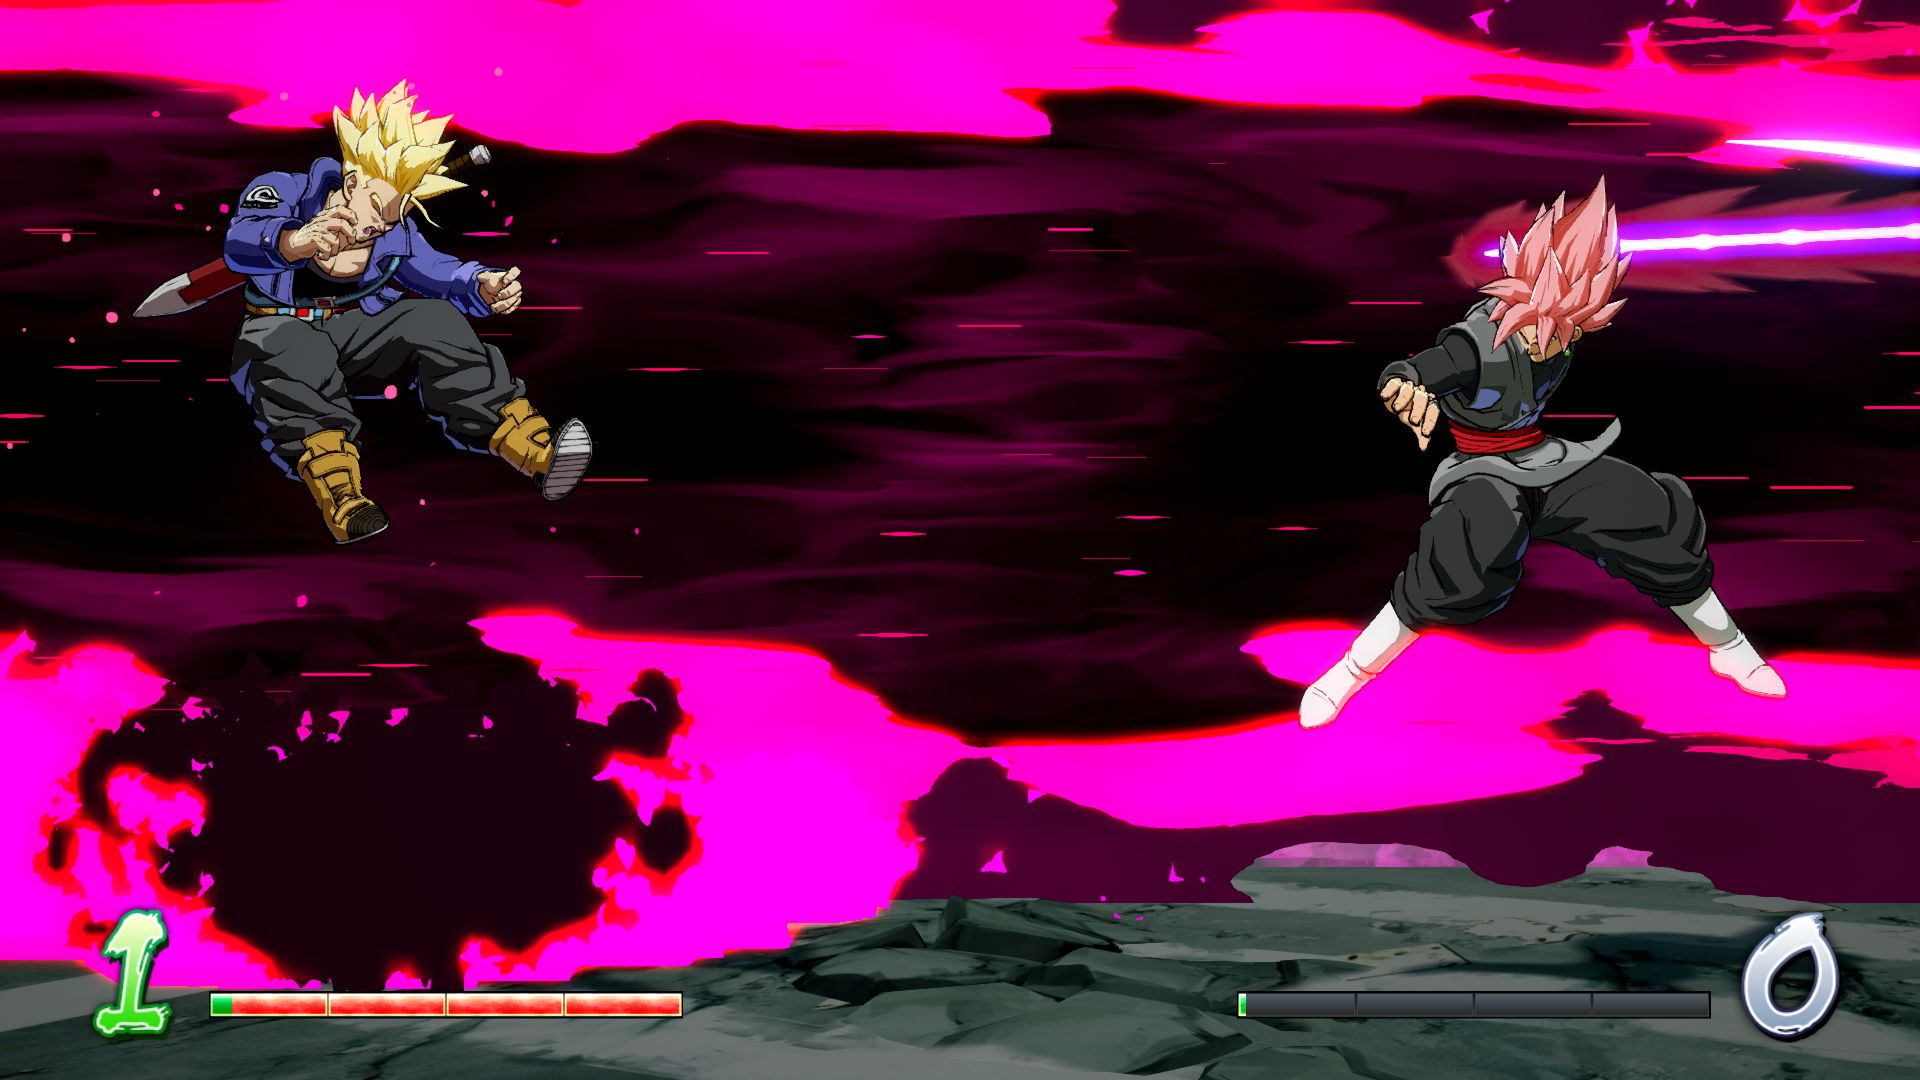 Beerus Hit And Goku Black Coming To Dragon Ball FighterZ